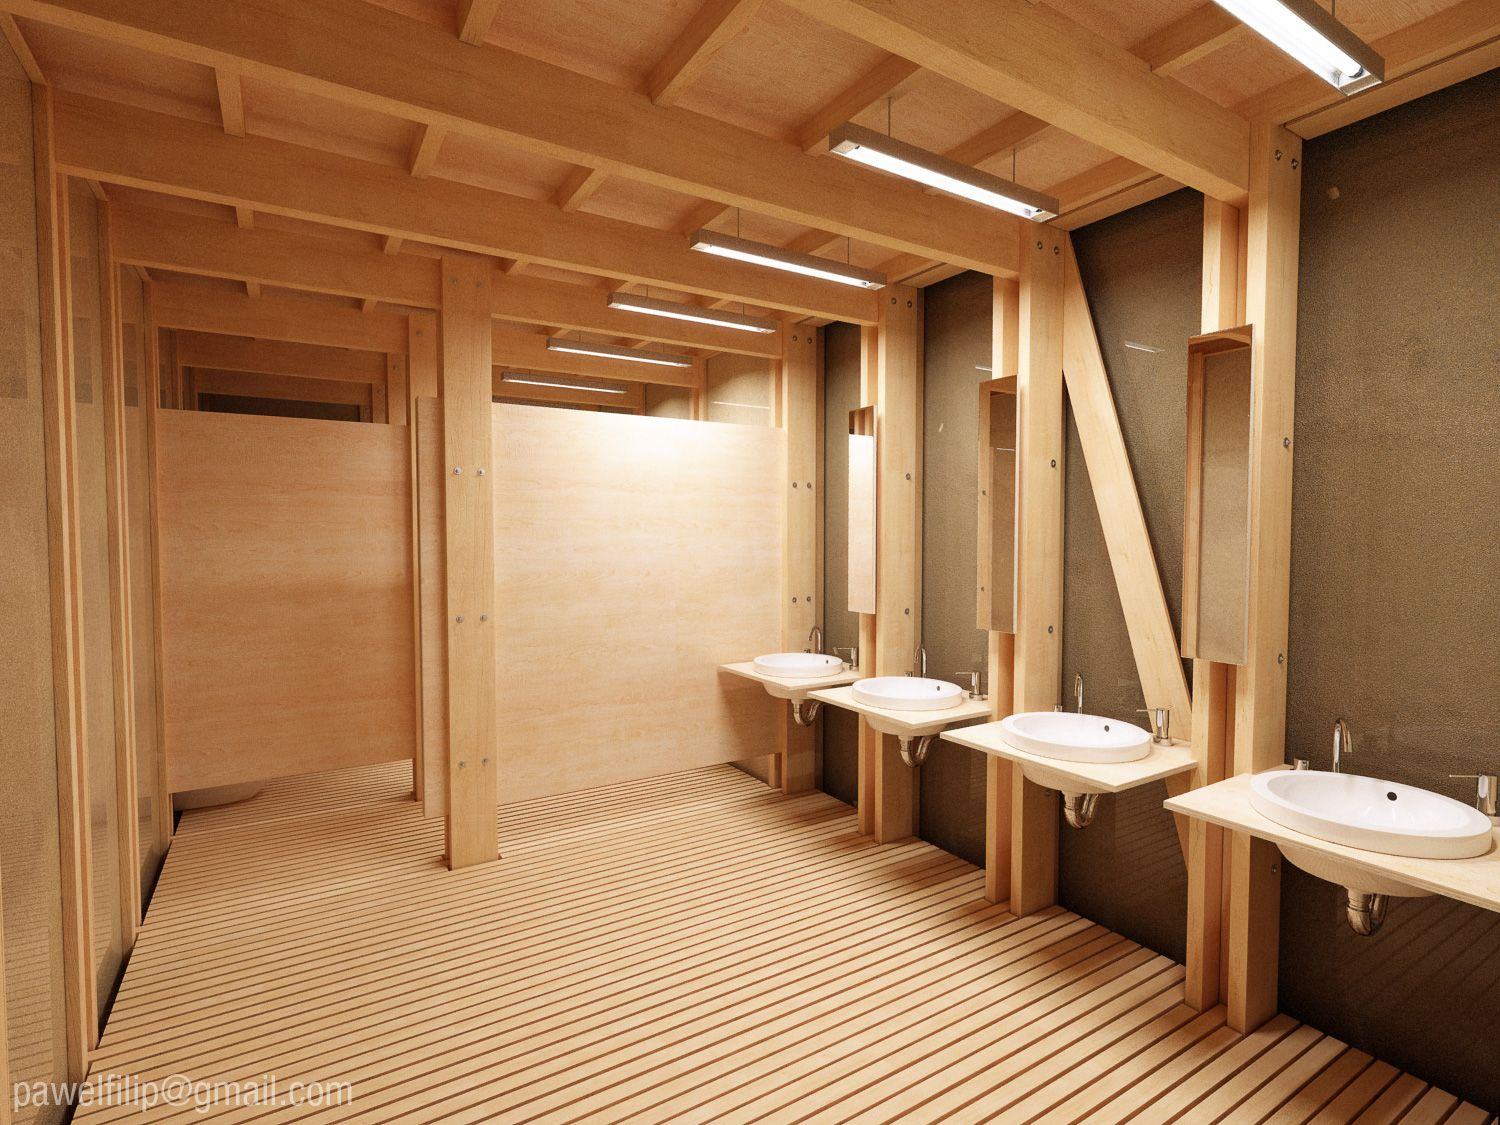 Public Toilet   interior night by  zmoodel on deviantART. 17 Best images about Public Restroom Journal on Pinterest